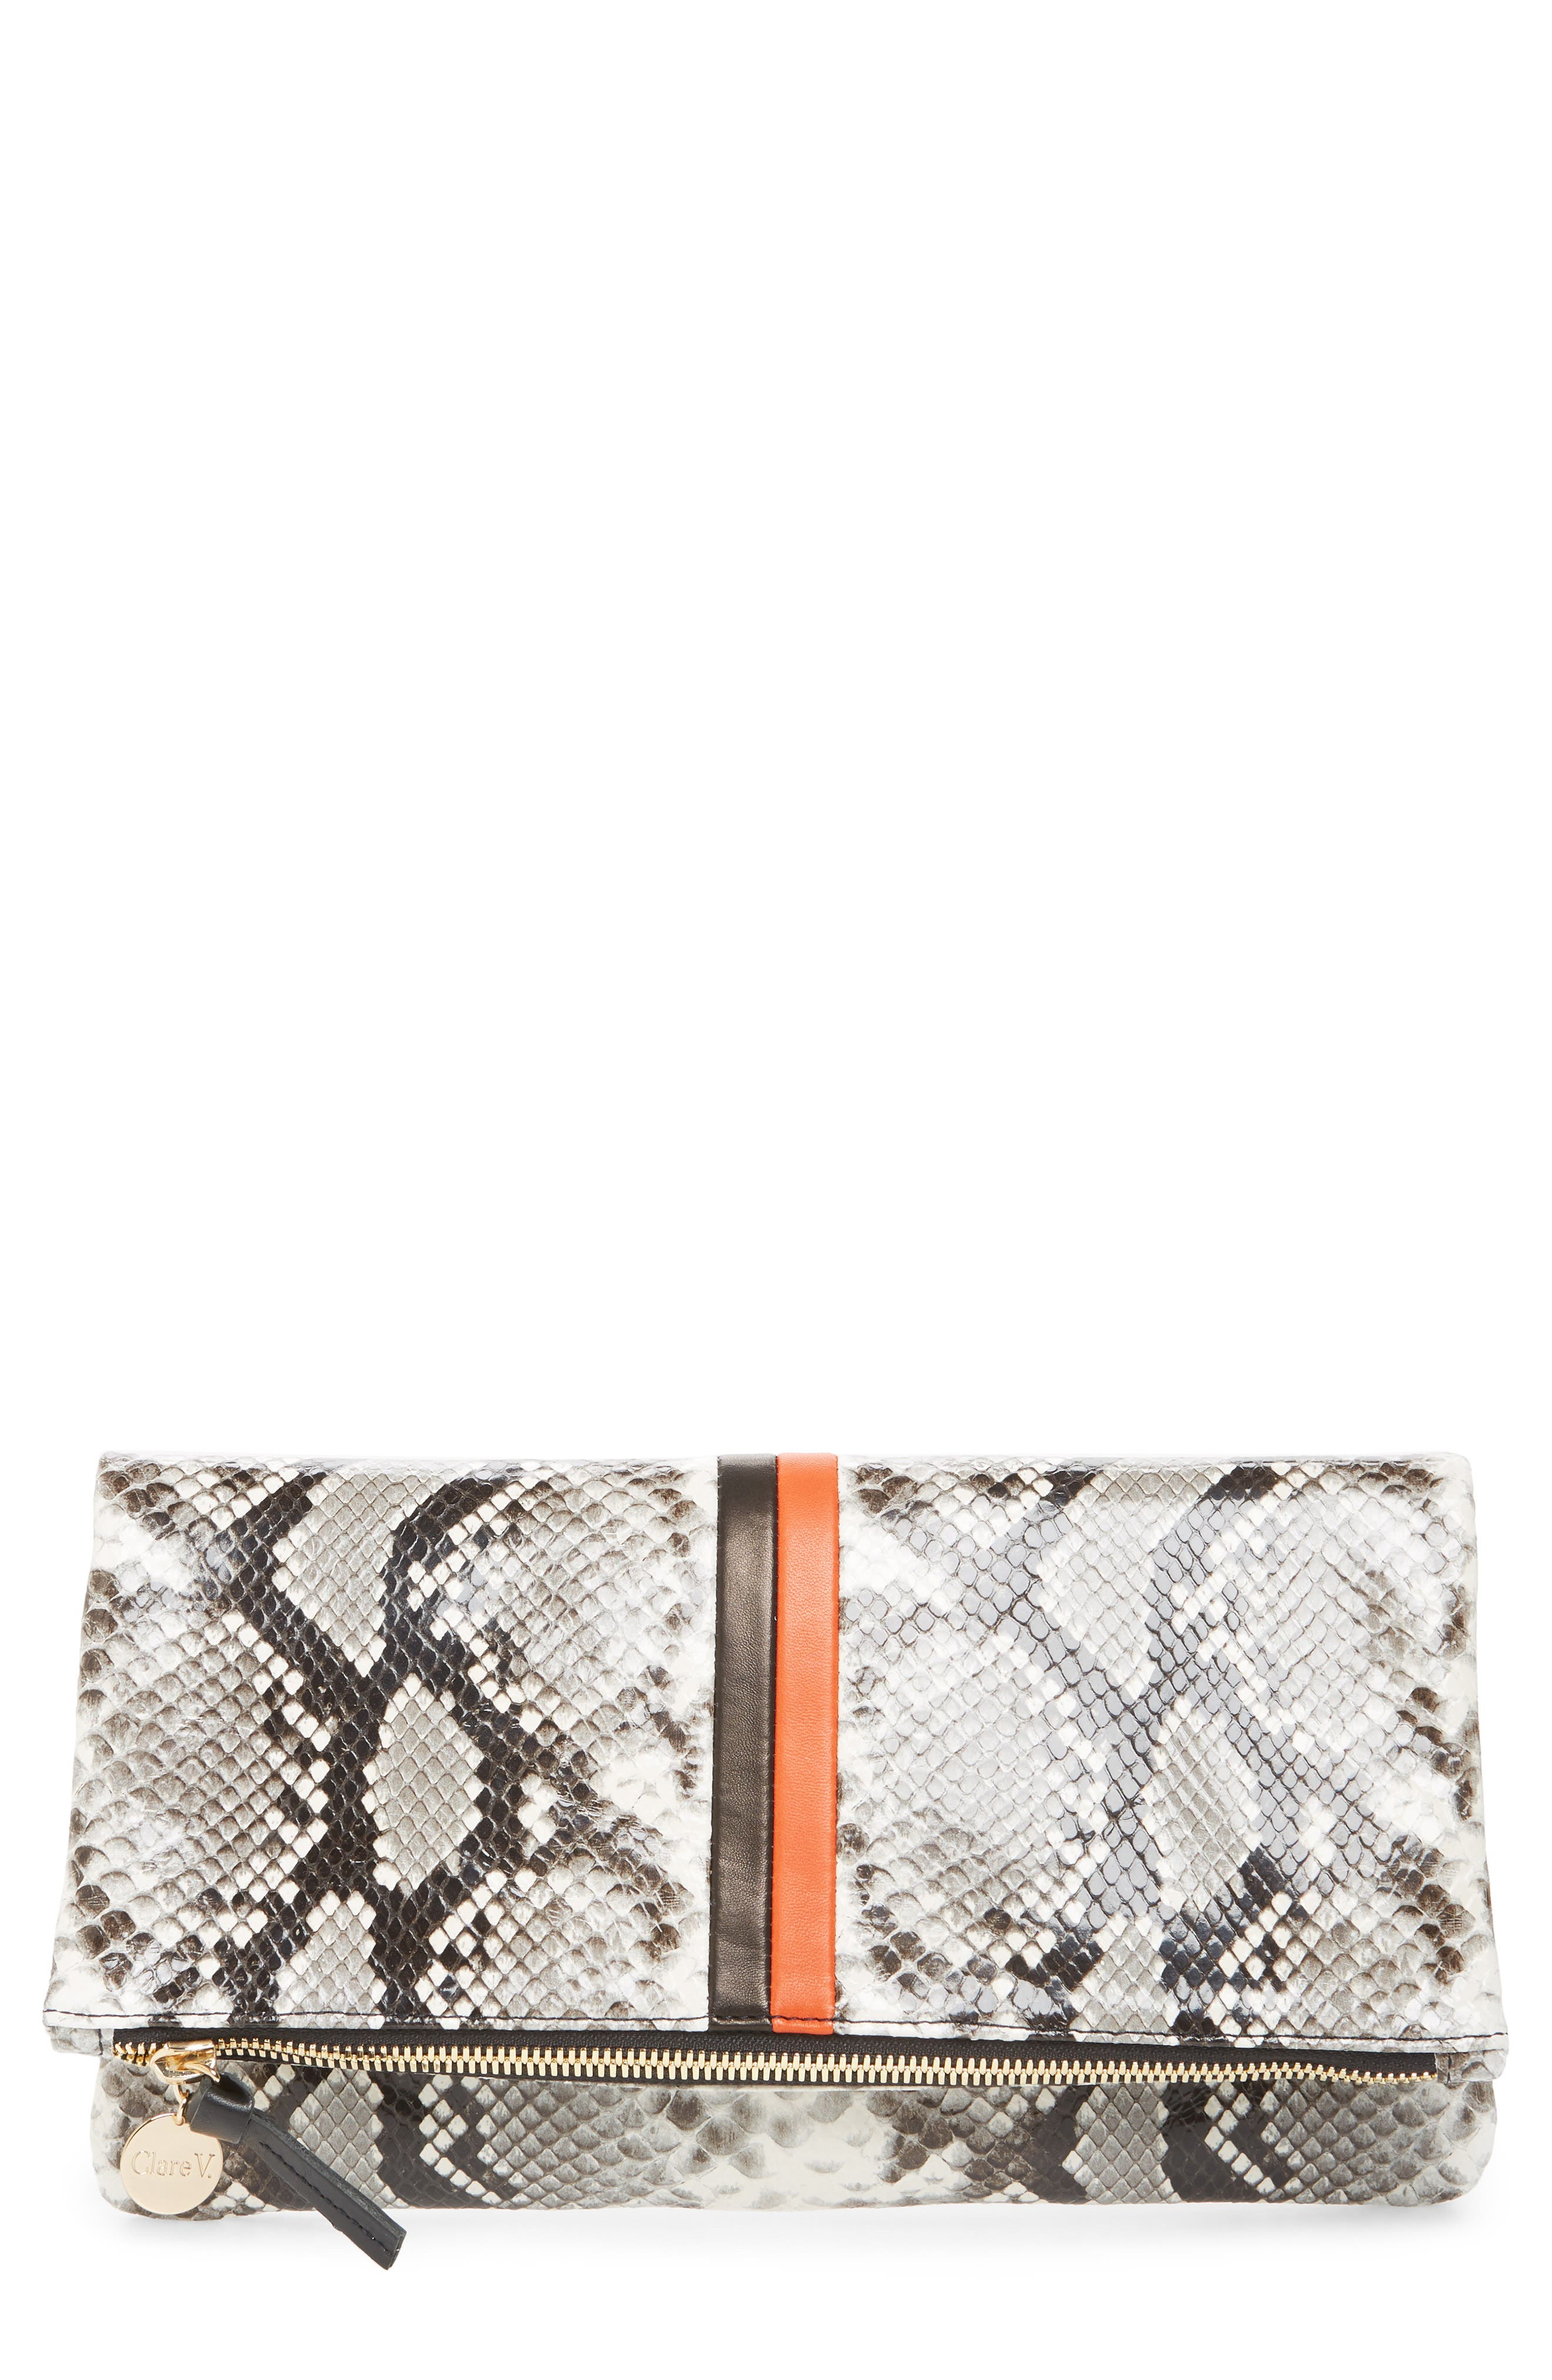 Python Embossed Leather Foldover Clutch,                             Main thumbnail 1, color,                             BLACK PYTHON WITH STRIPES